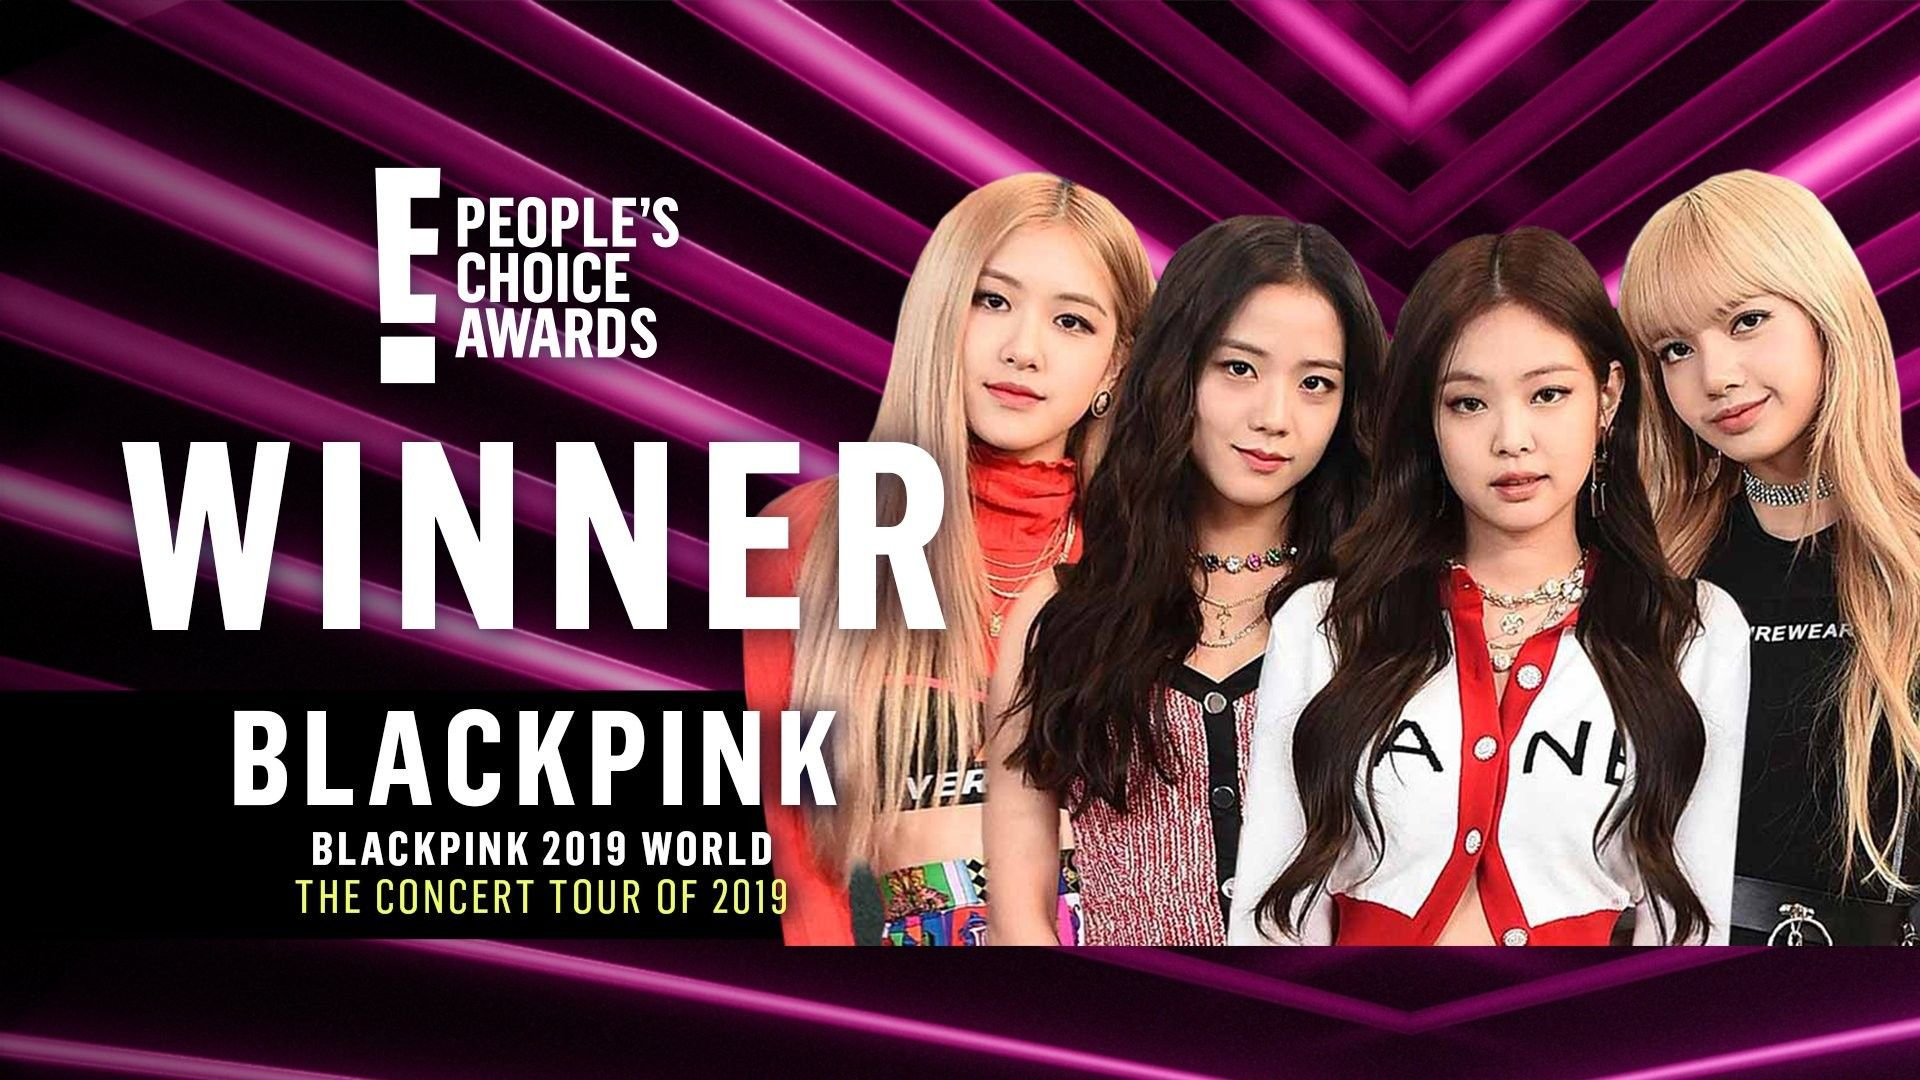 Pin By Relax On Blackpink People S Choice Awards People Choice Awards